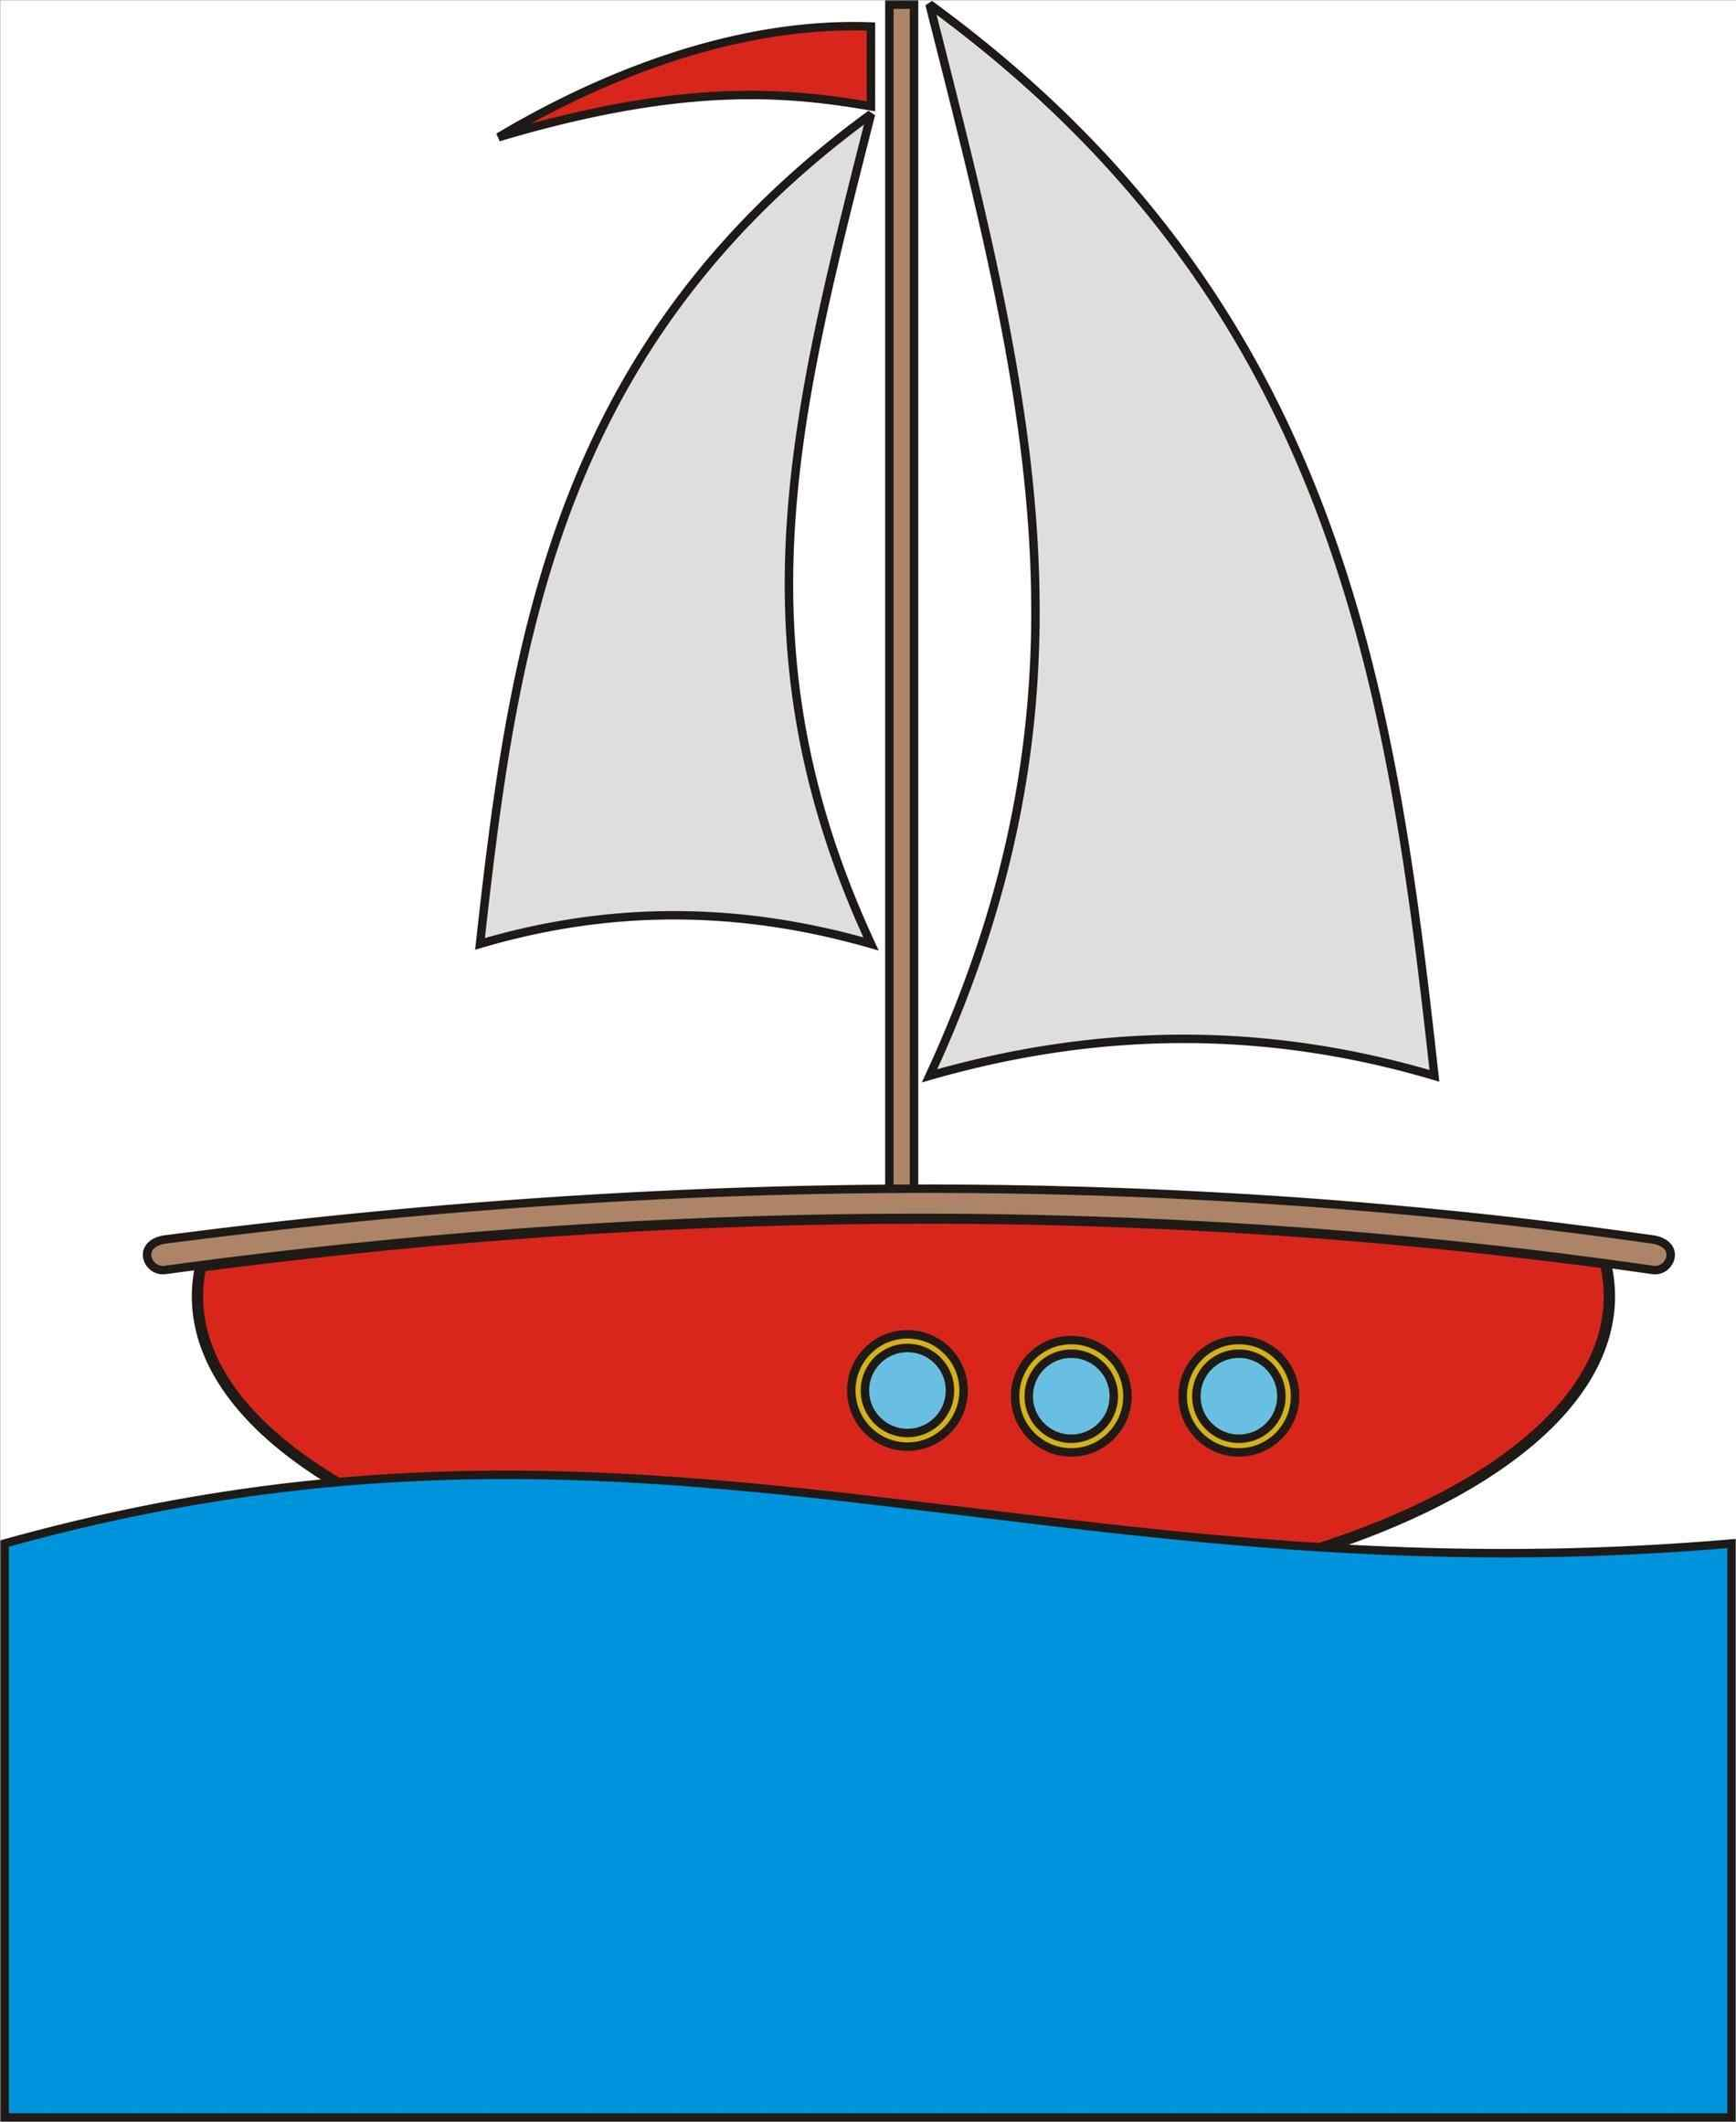 The images collection of. Boat clipart boating